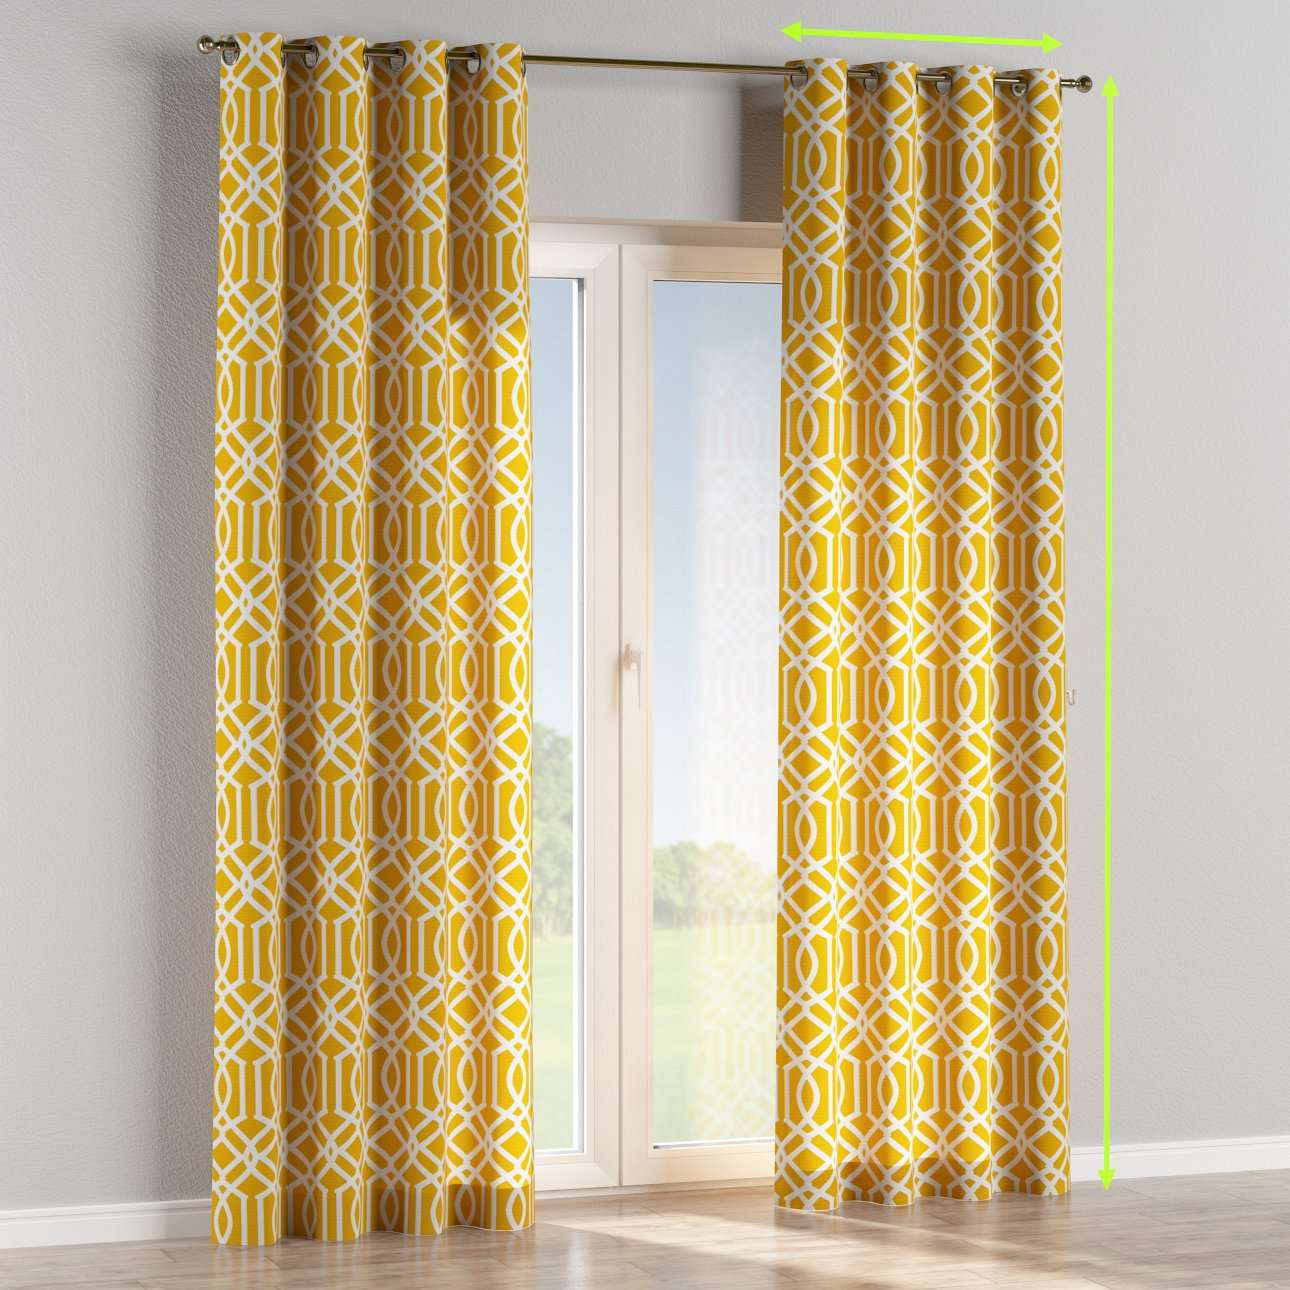 Eyelet curtains in collection Comic Book & Geo Prints, fabric: 135-09